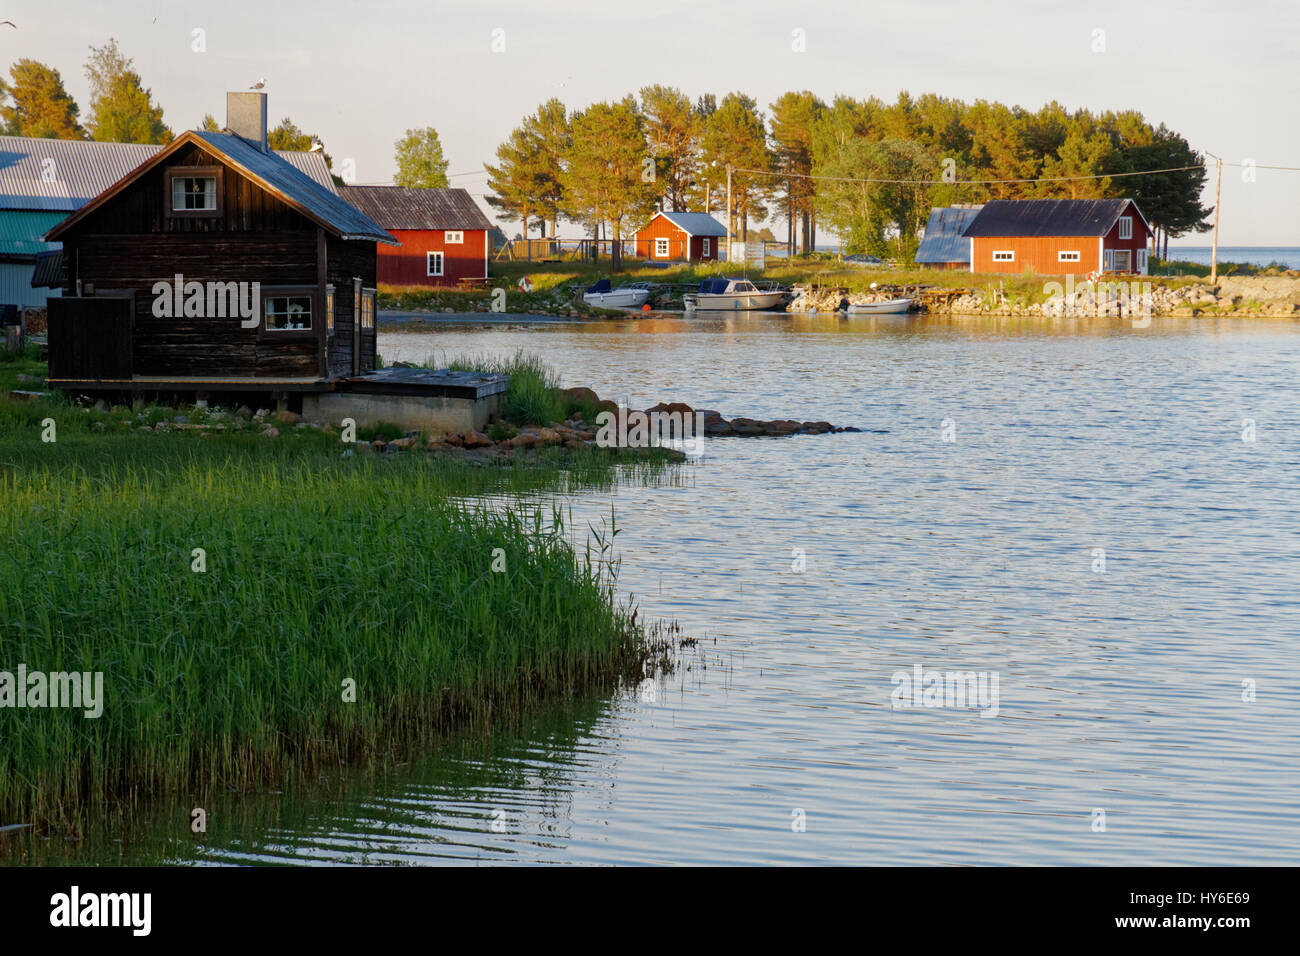 Beach with houses on the Swedish East Coast - Stock Image